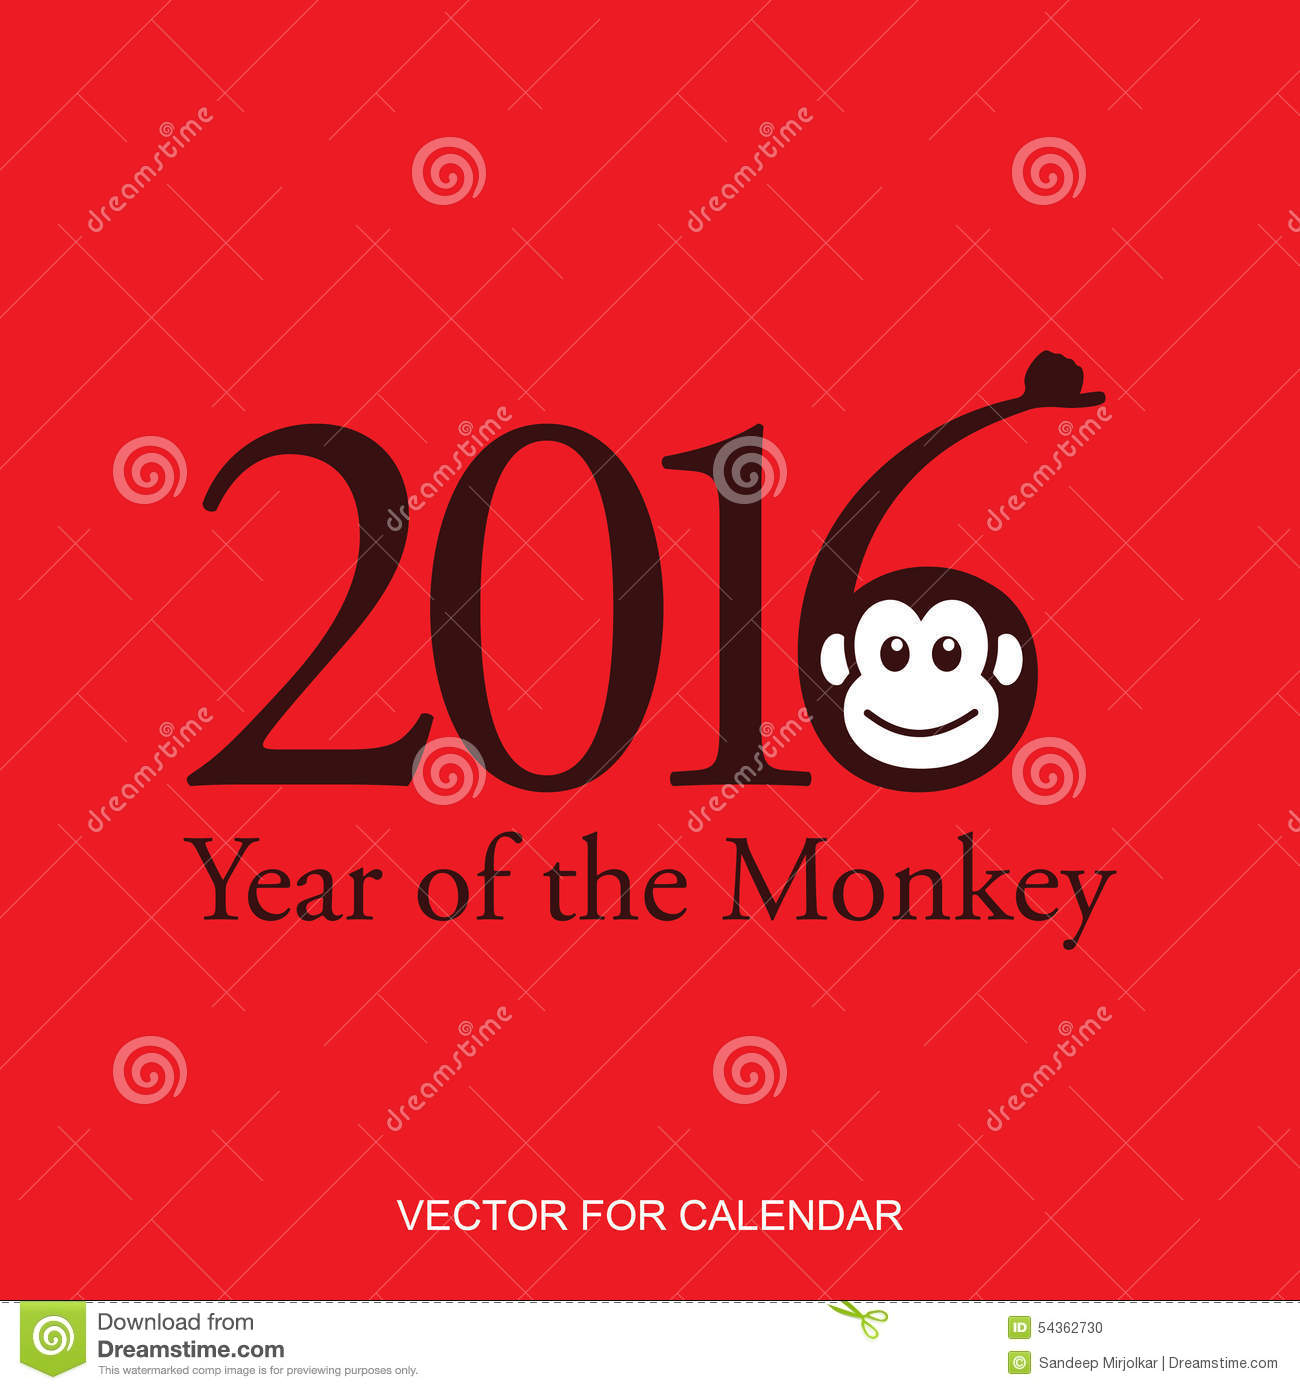 Calendar 2016 Year Of The Monkey: Chinese Zodiac Sign Stock Vector ...